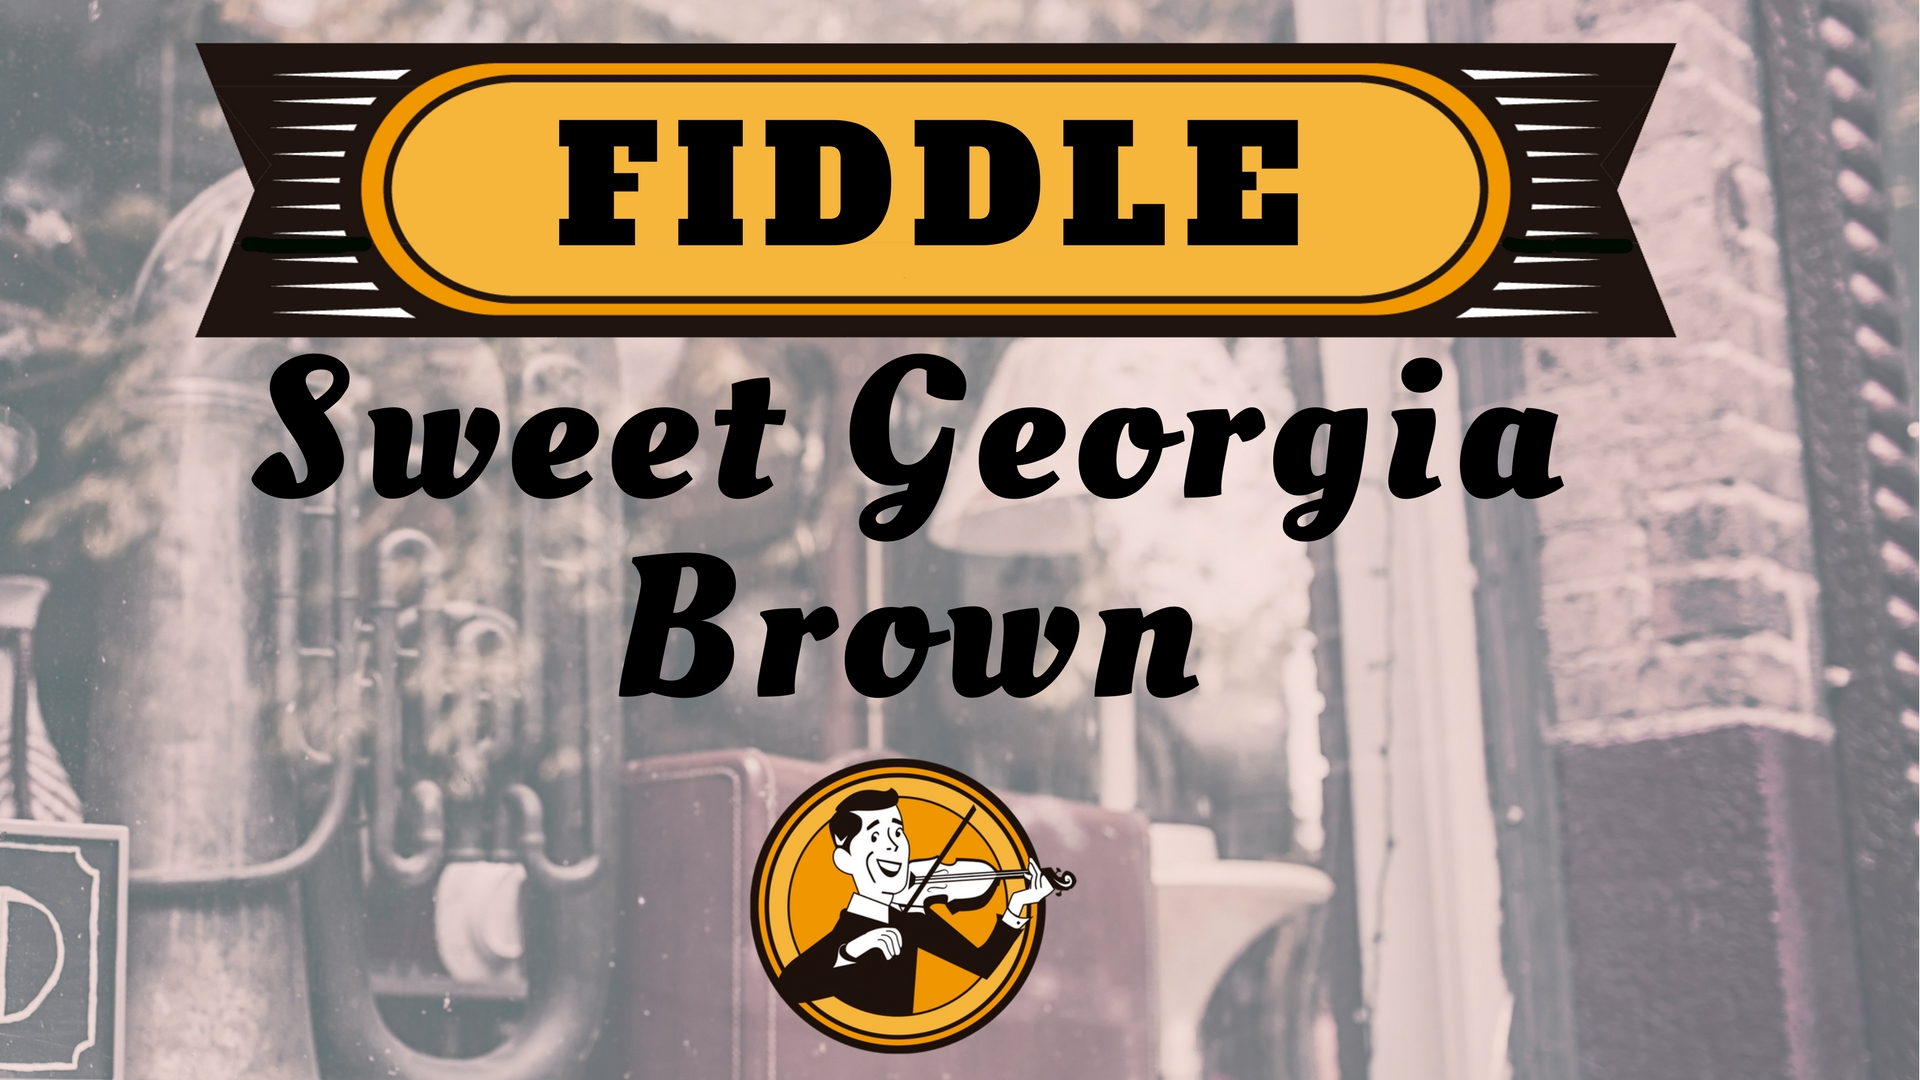 Fiddle Sweet Georgia